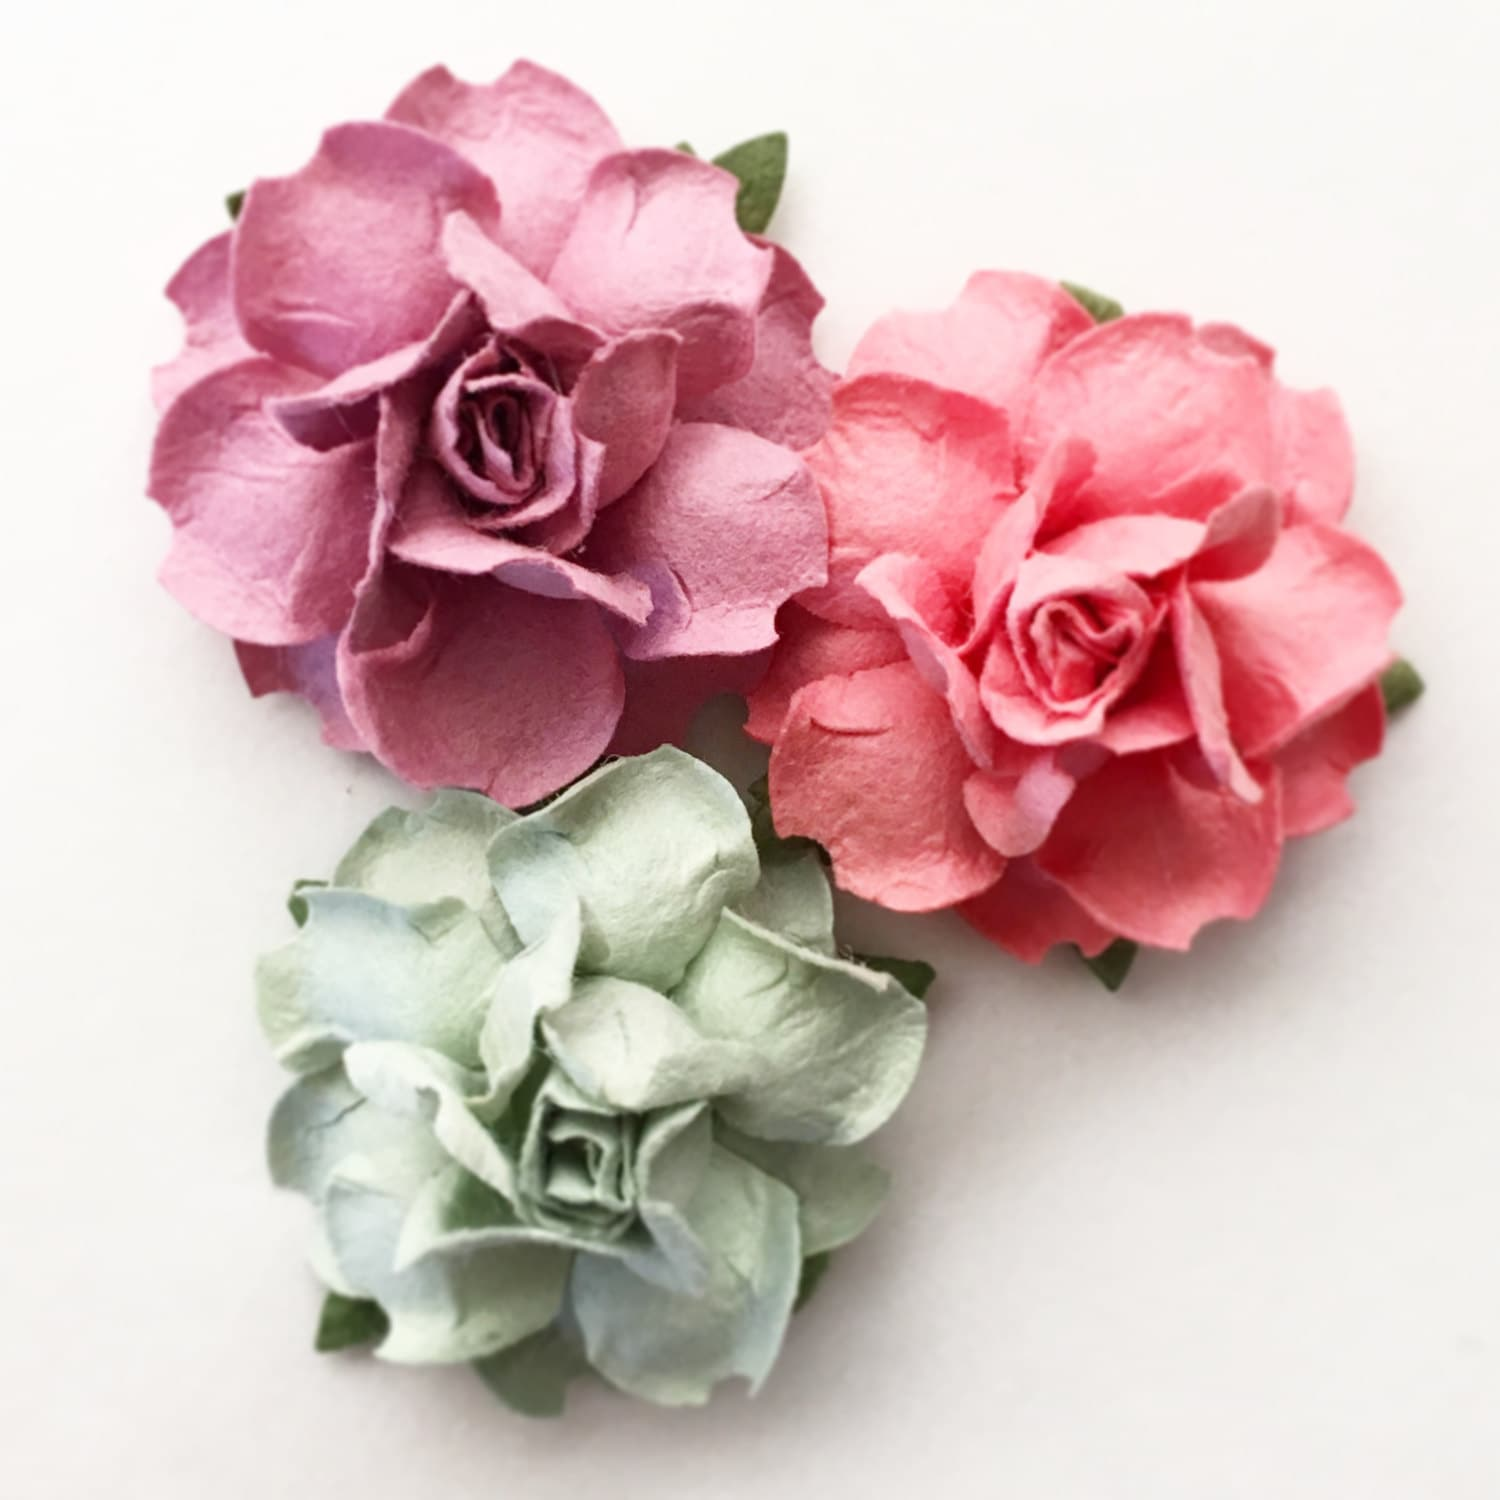 DIY Succulent Wreath. Succulent Wedding Favor. Succulent